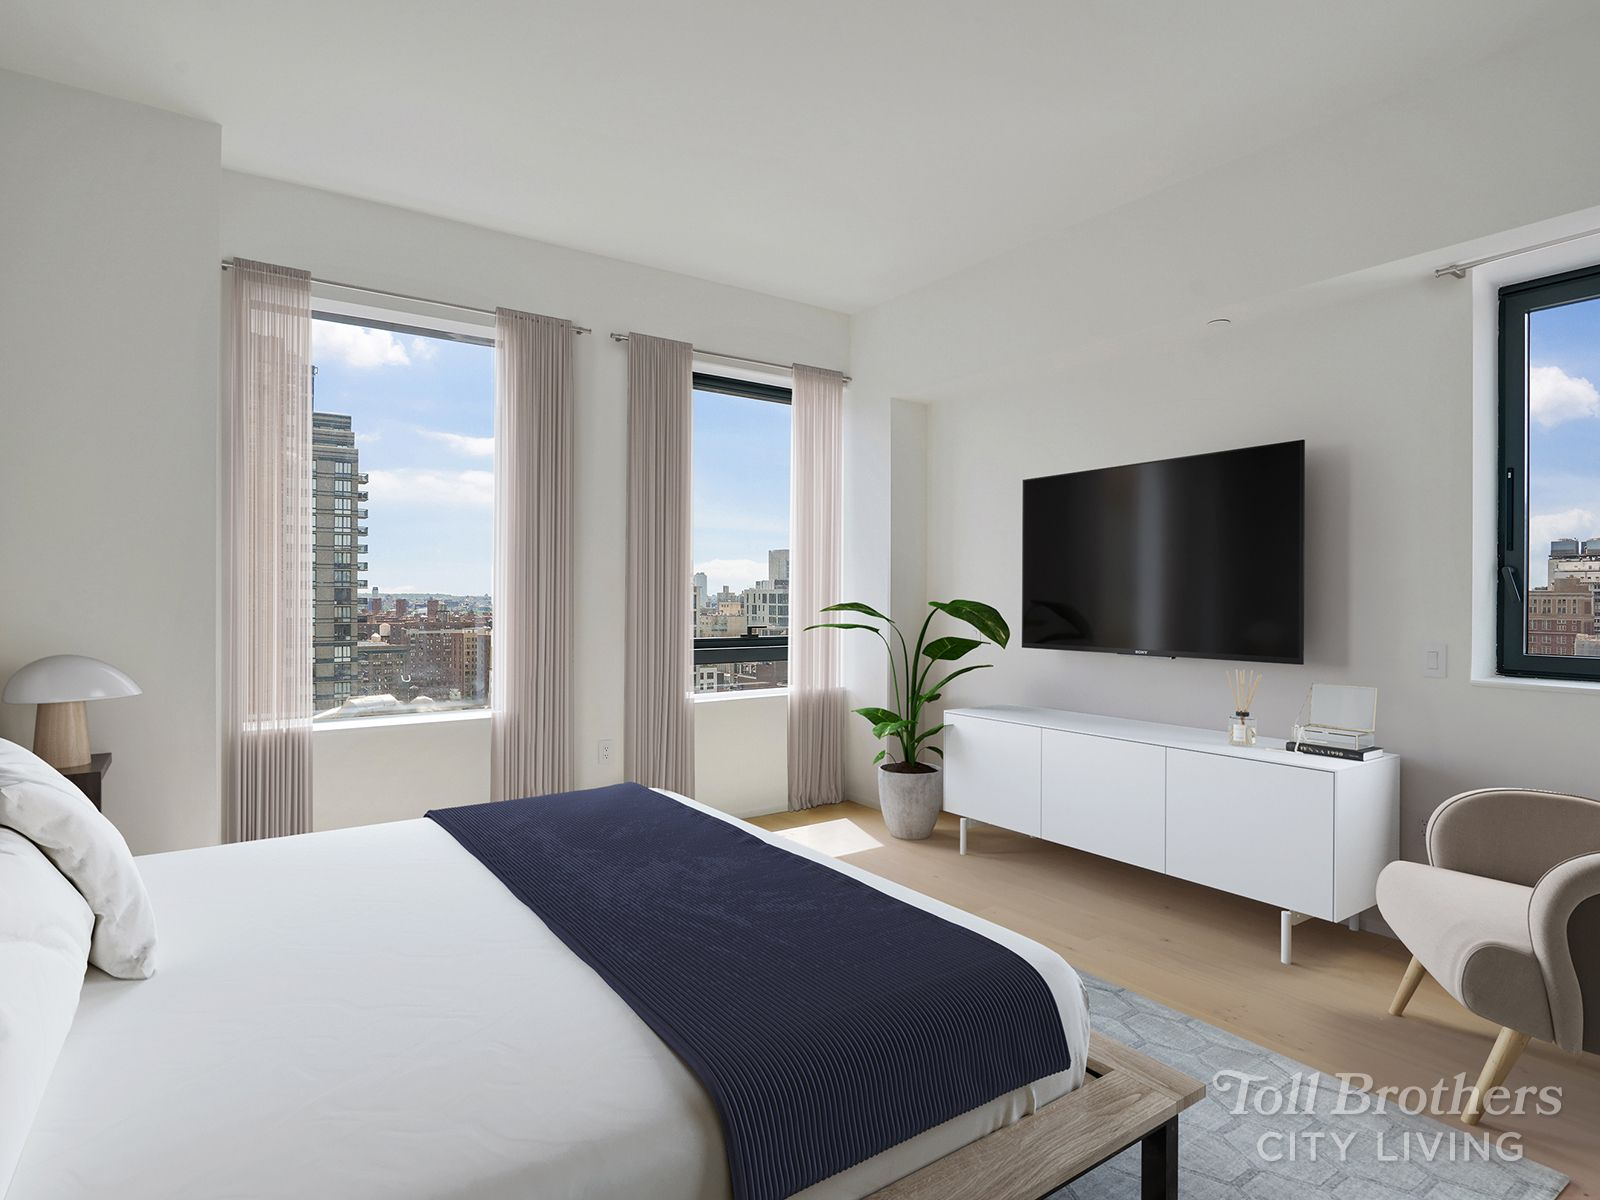 Bedroom featured in the N1605 By Toll Brothers in New York, NY